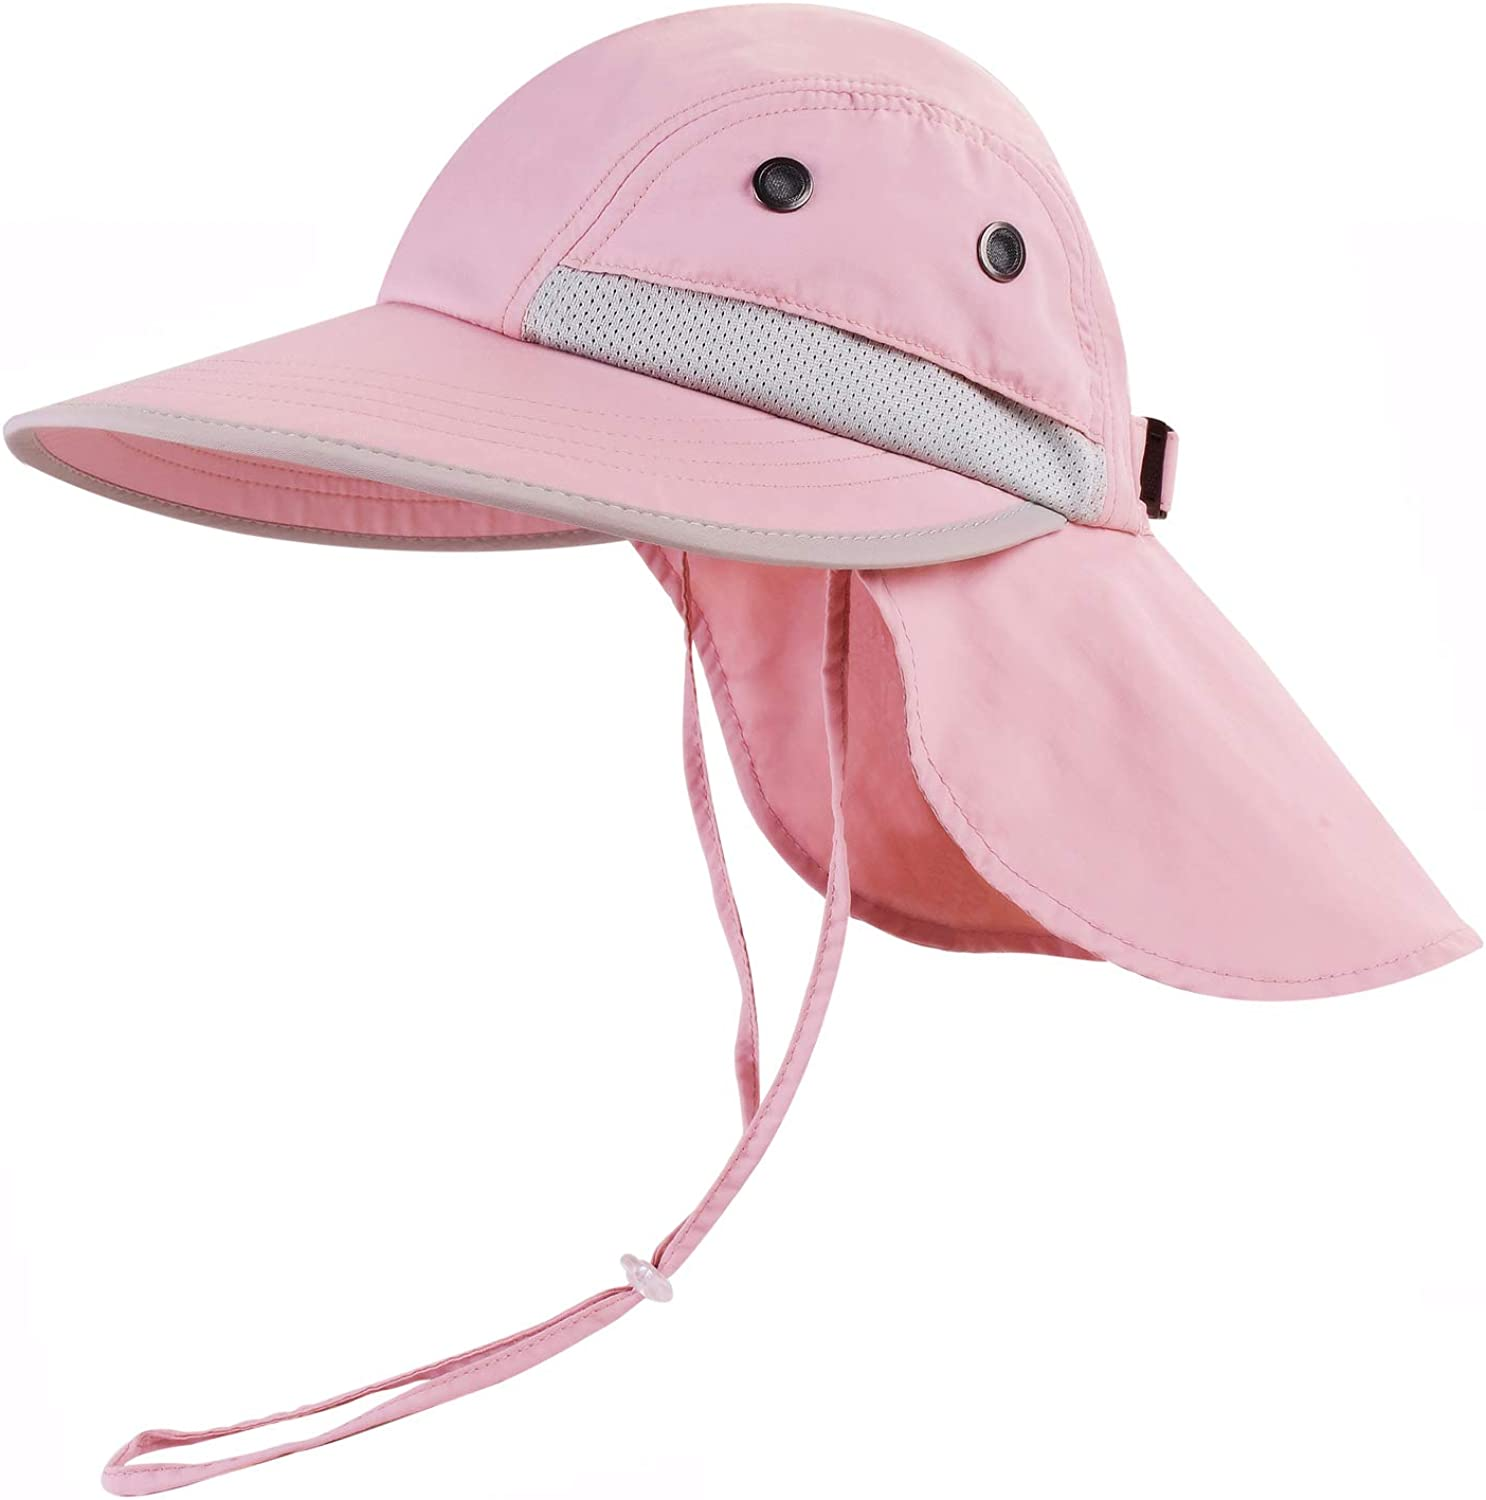 Toddler Sun Hat Outlet SALE for Kids Opening large release sale Baby Boys Beach UPF Protection G 50